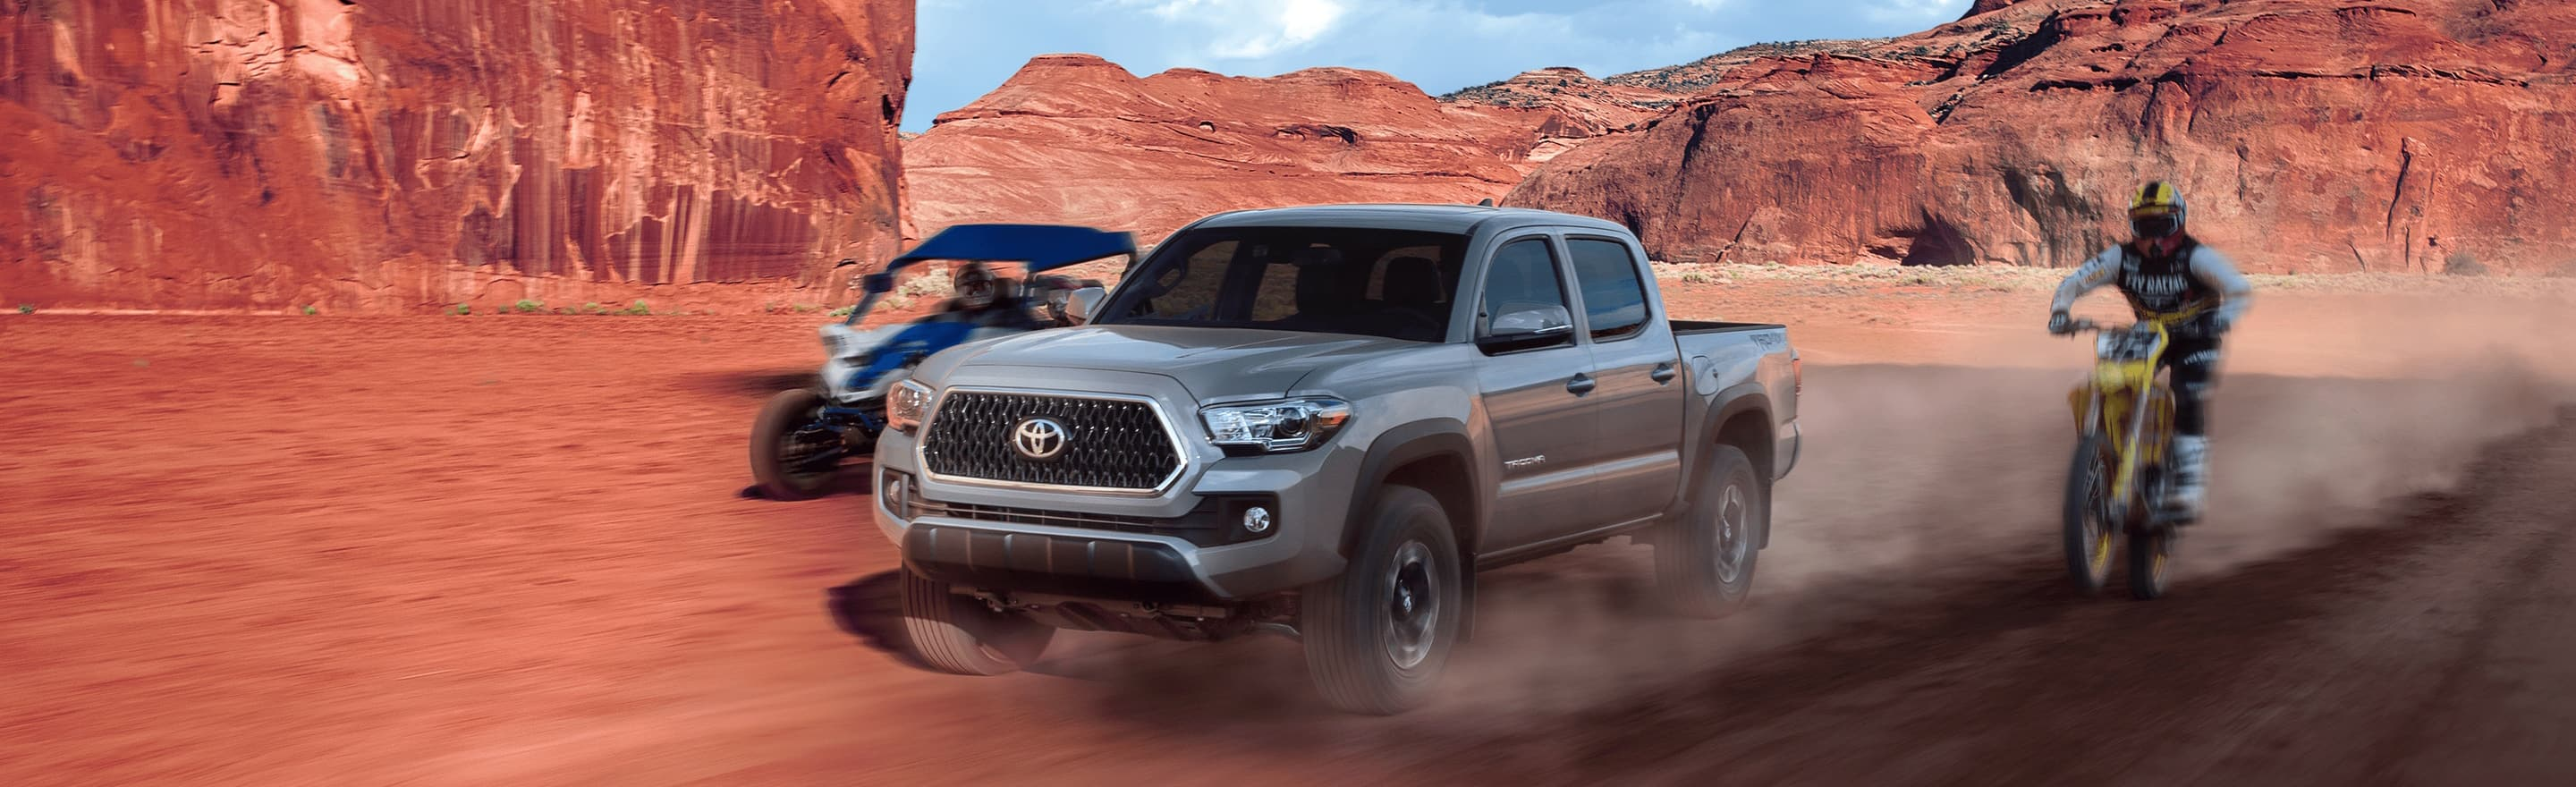 Forge Your Own Path With Ganley Toyota In The 2019 Toyota Tacoma